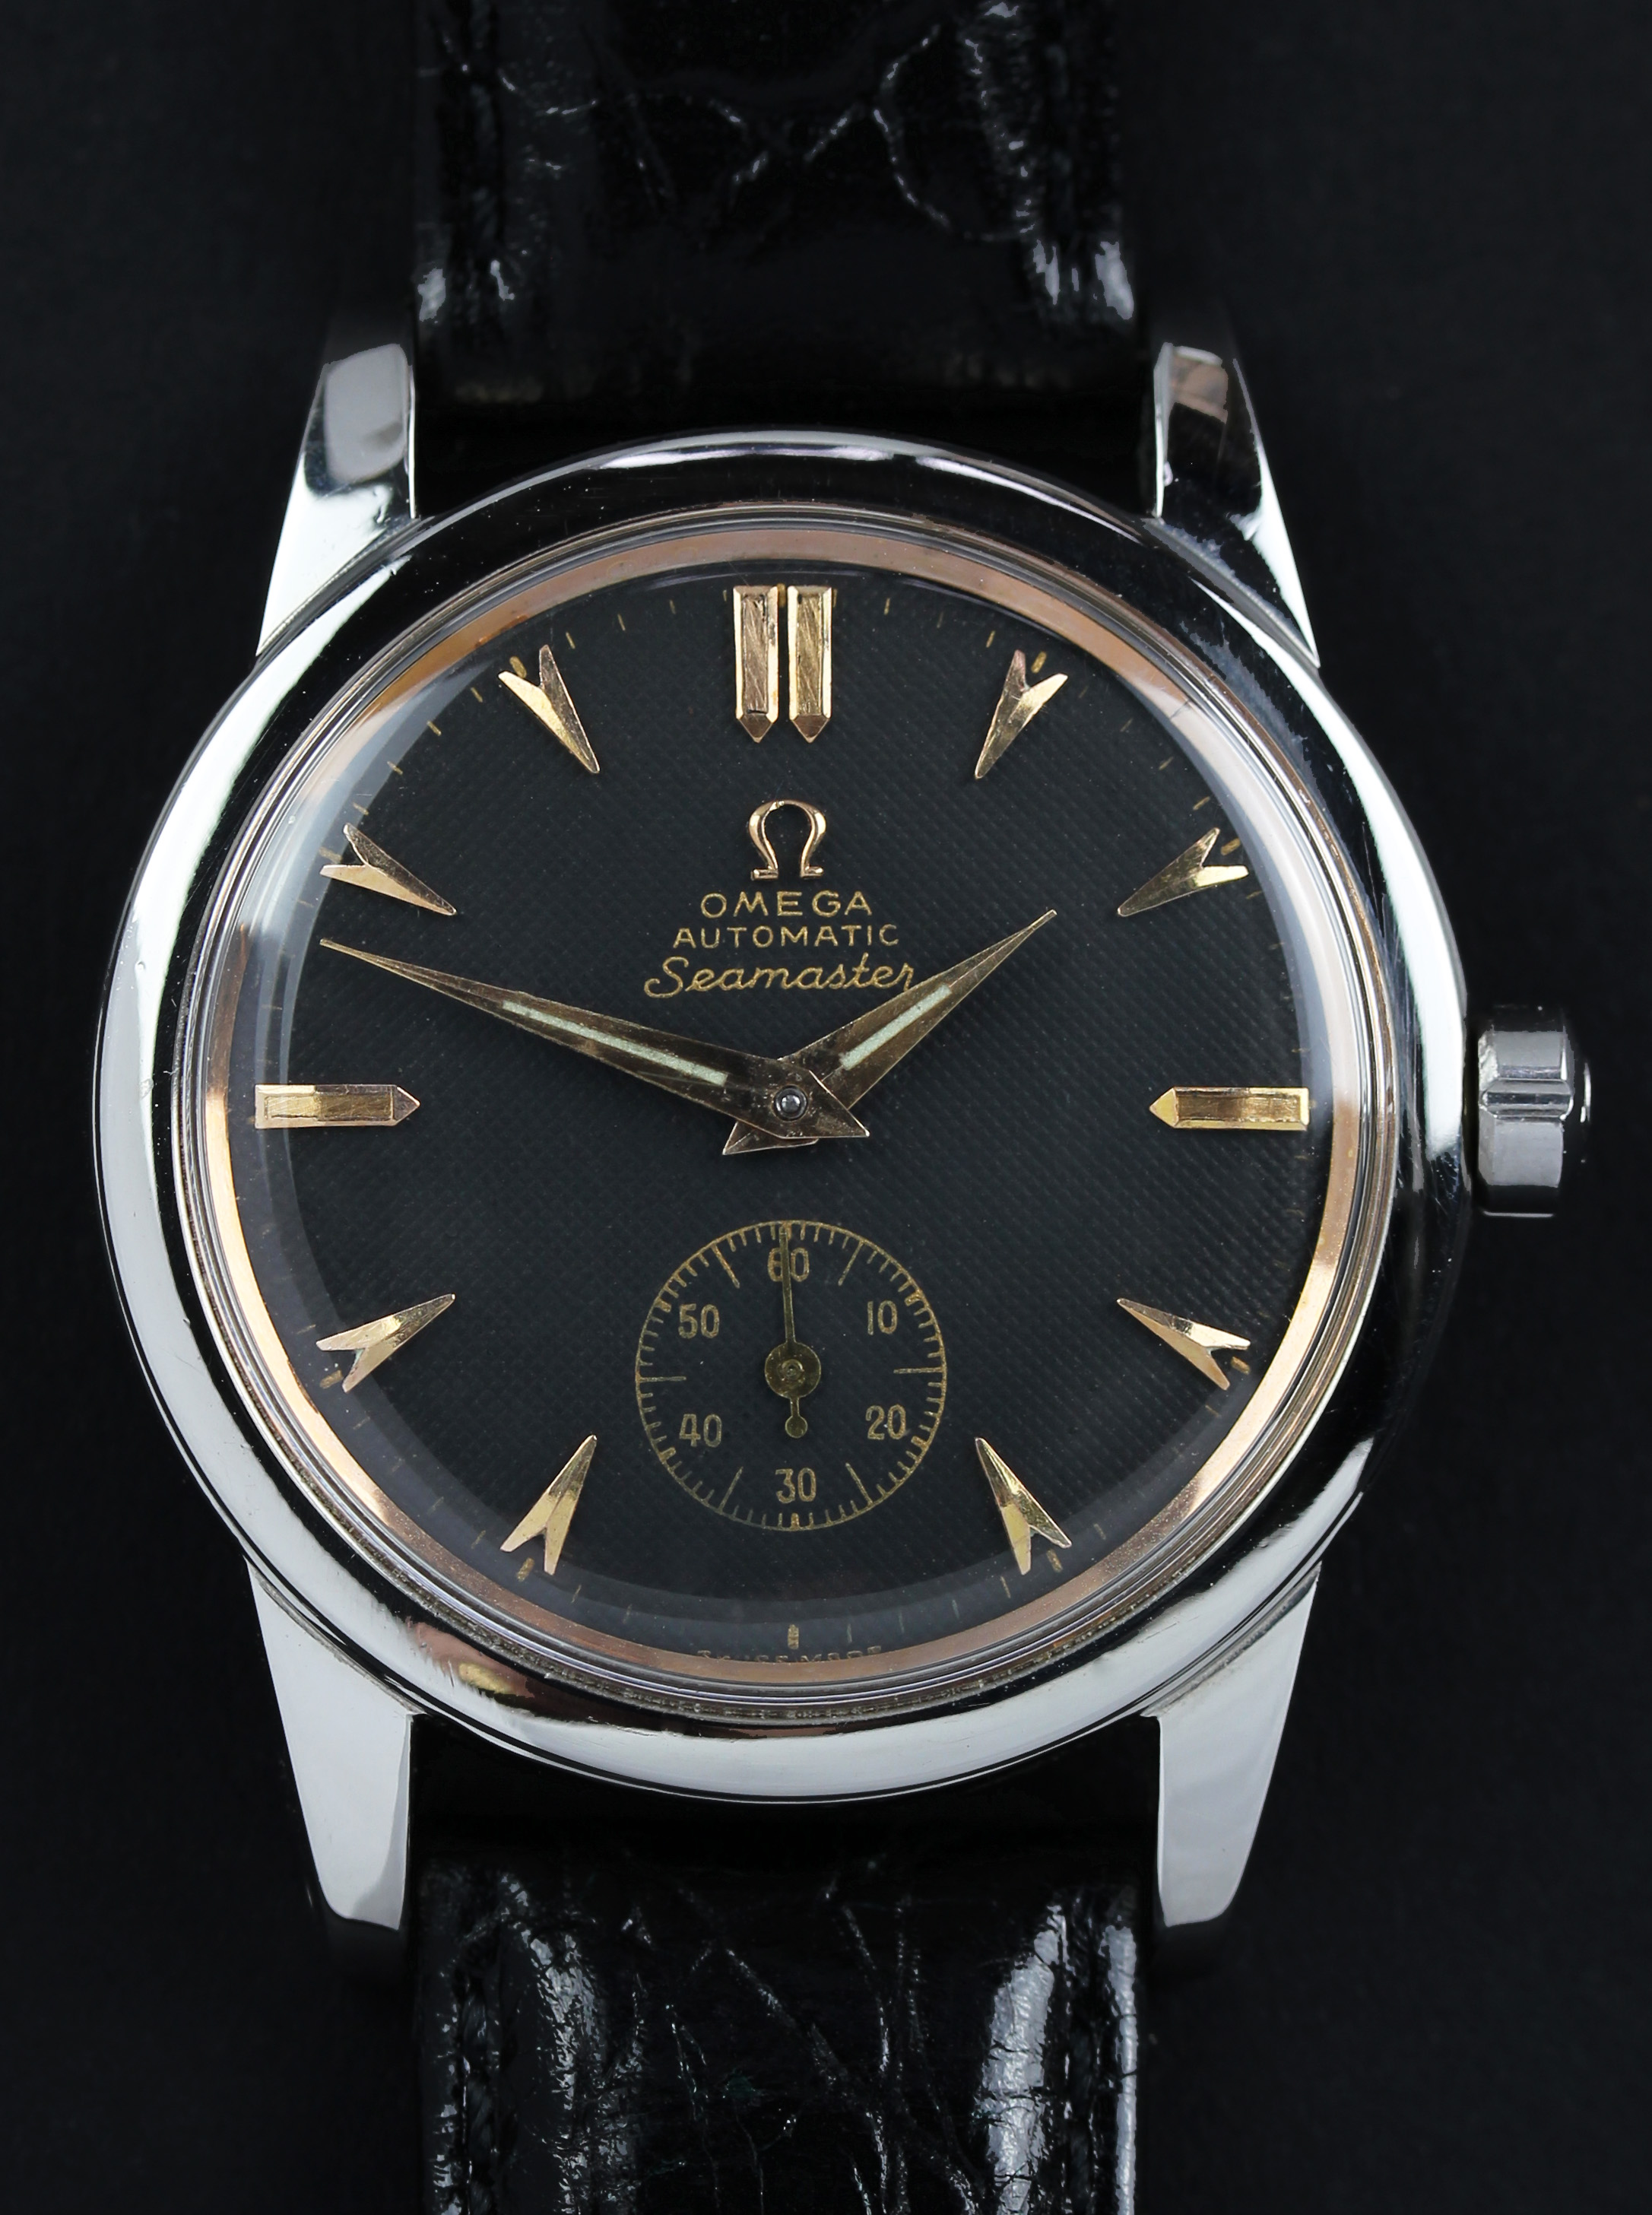 OMEGA Seamster automatic from 1947